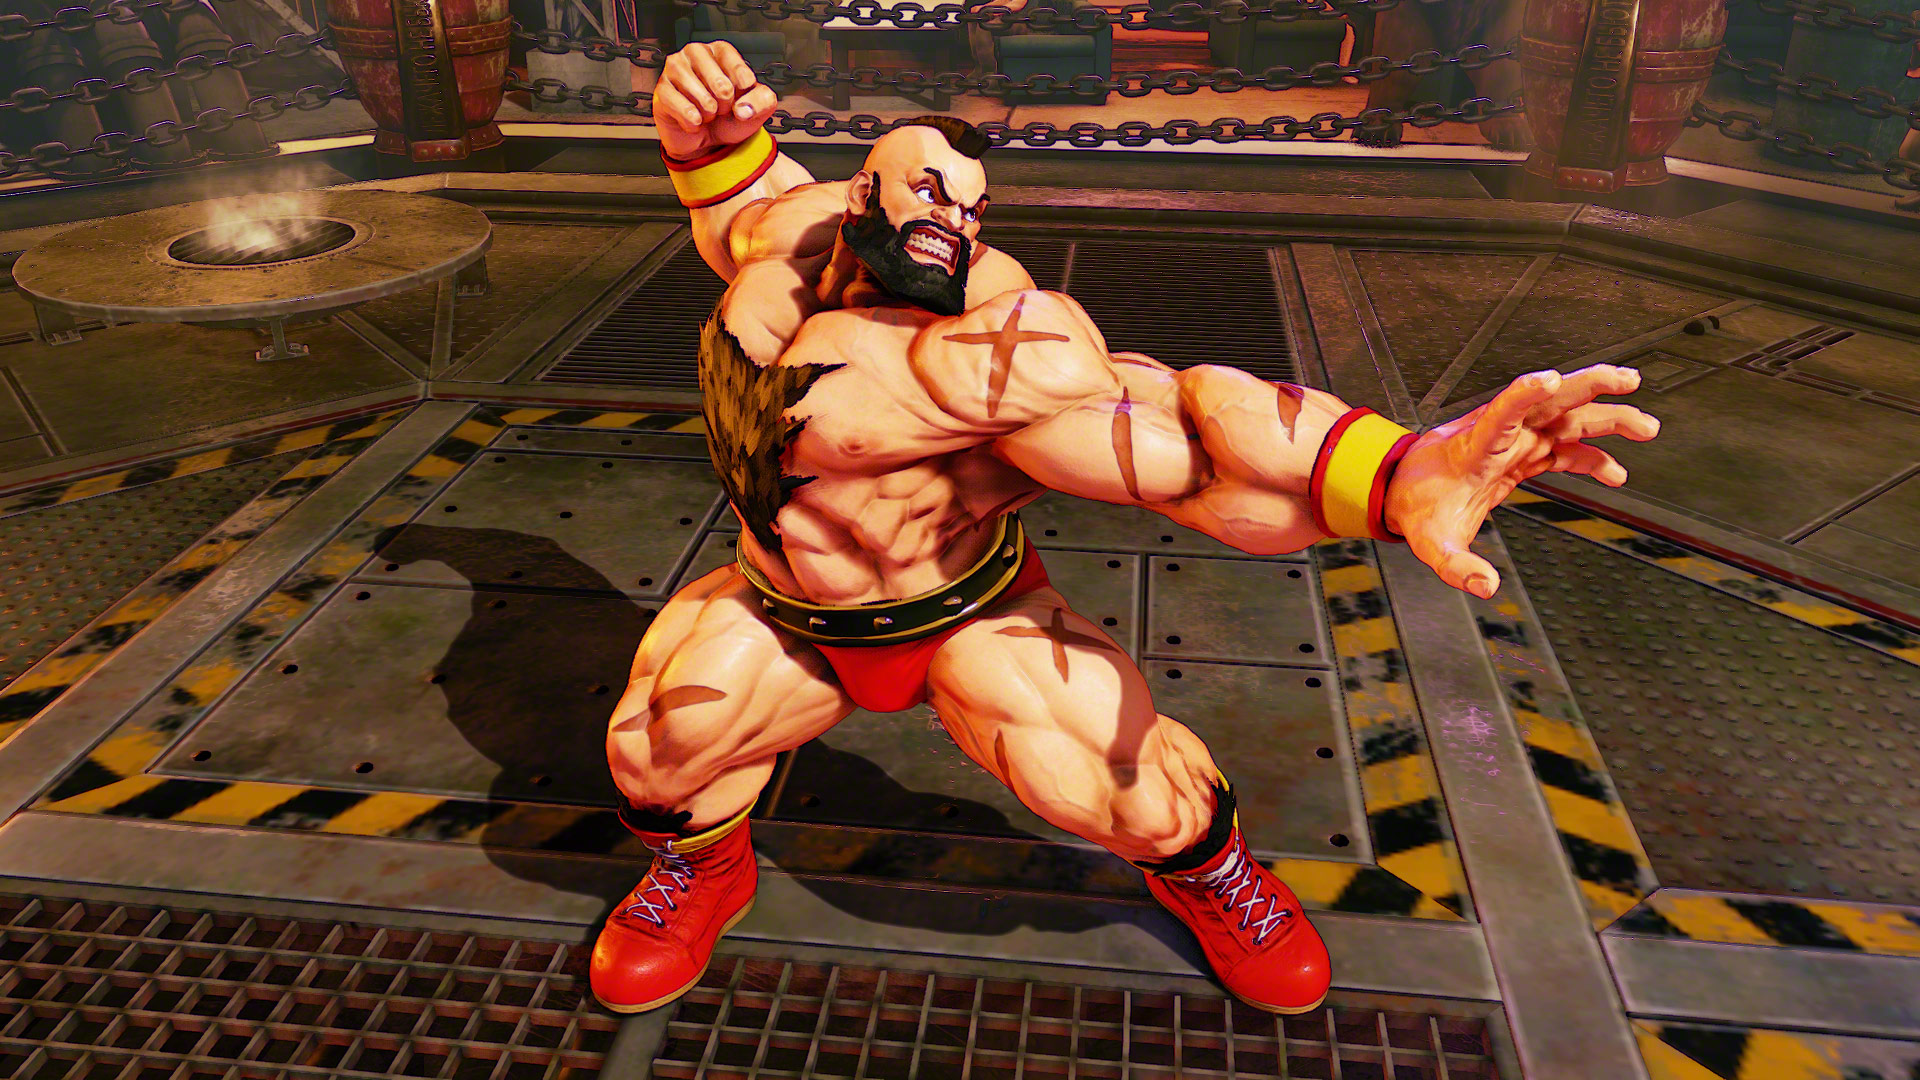 Zangief returns in Street Fighter 5 4 out of 18 image gallery